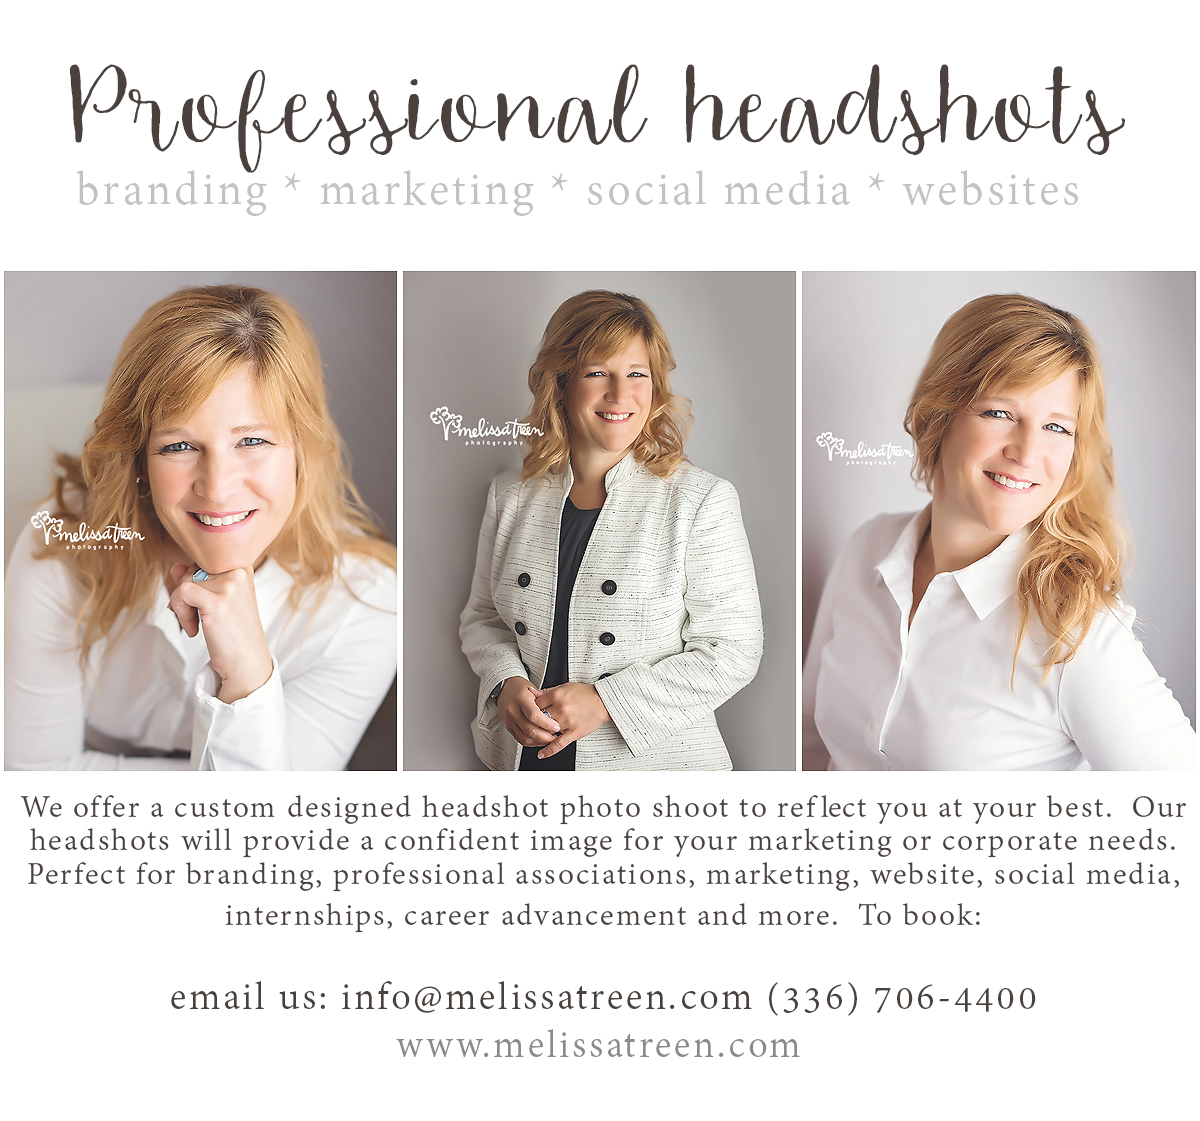 professional headshots burlington north carolina greensboro copy.jpg